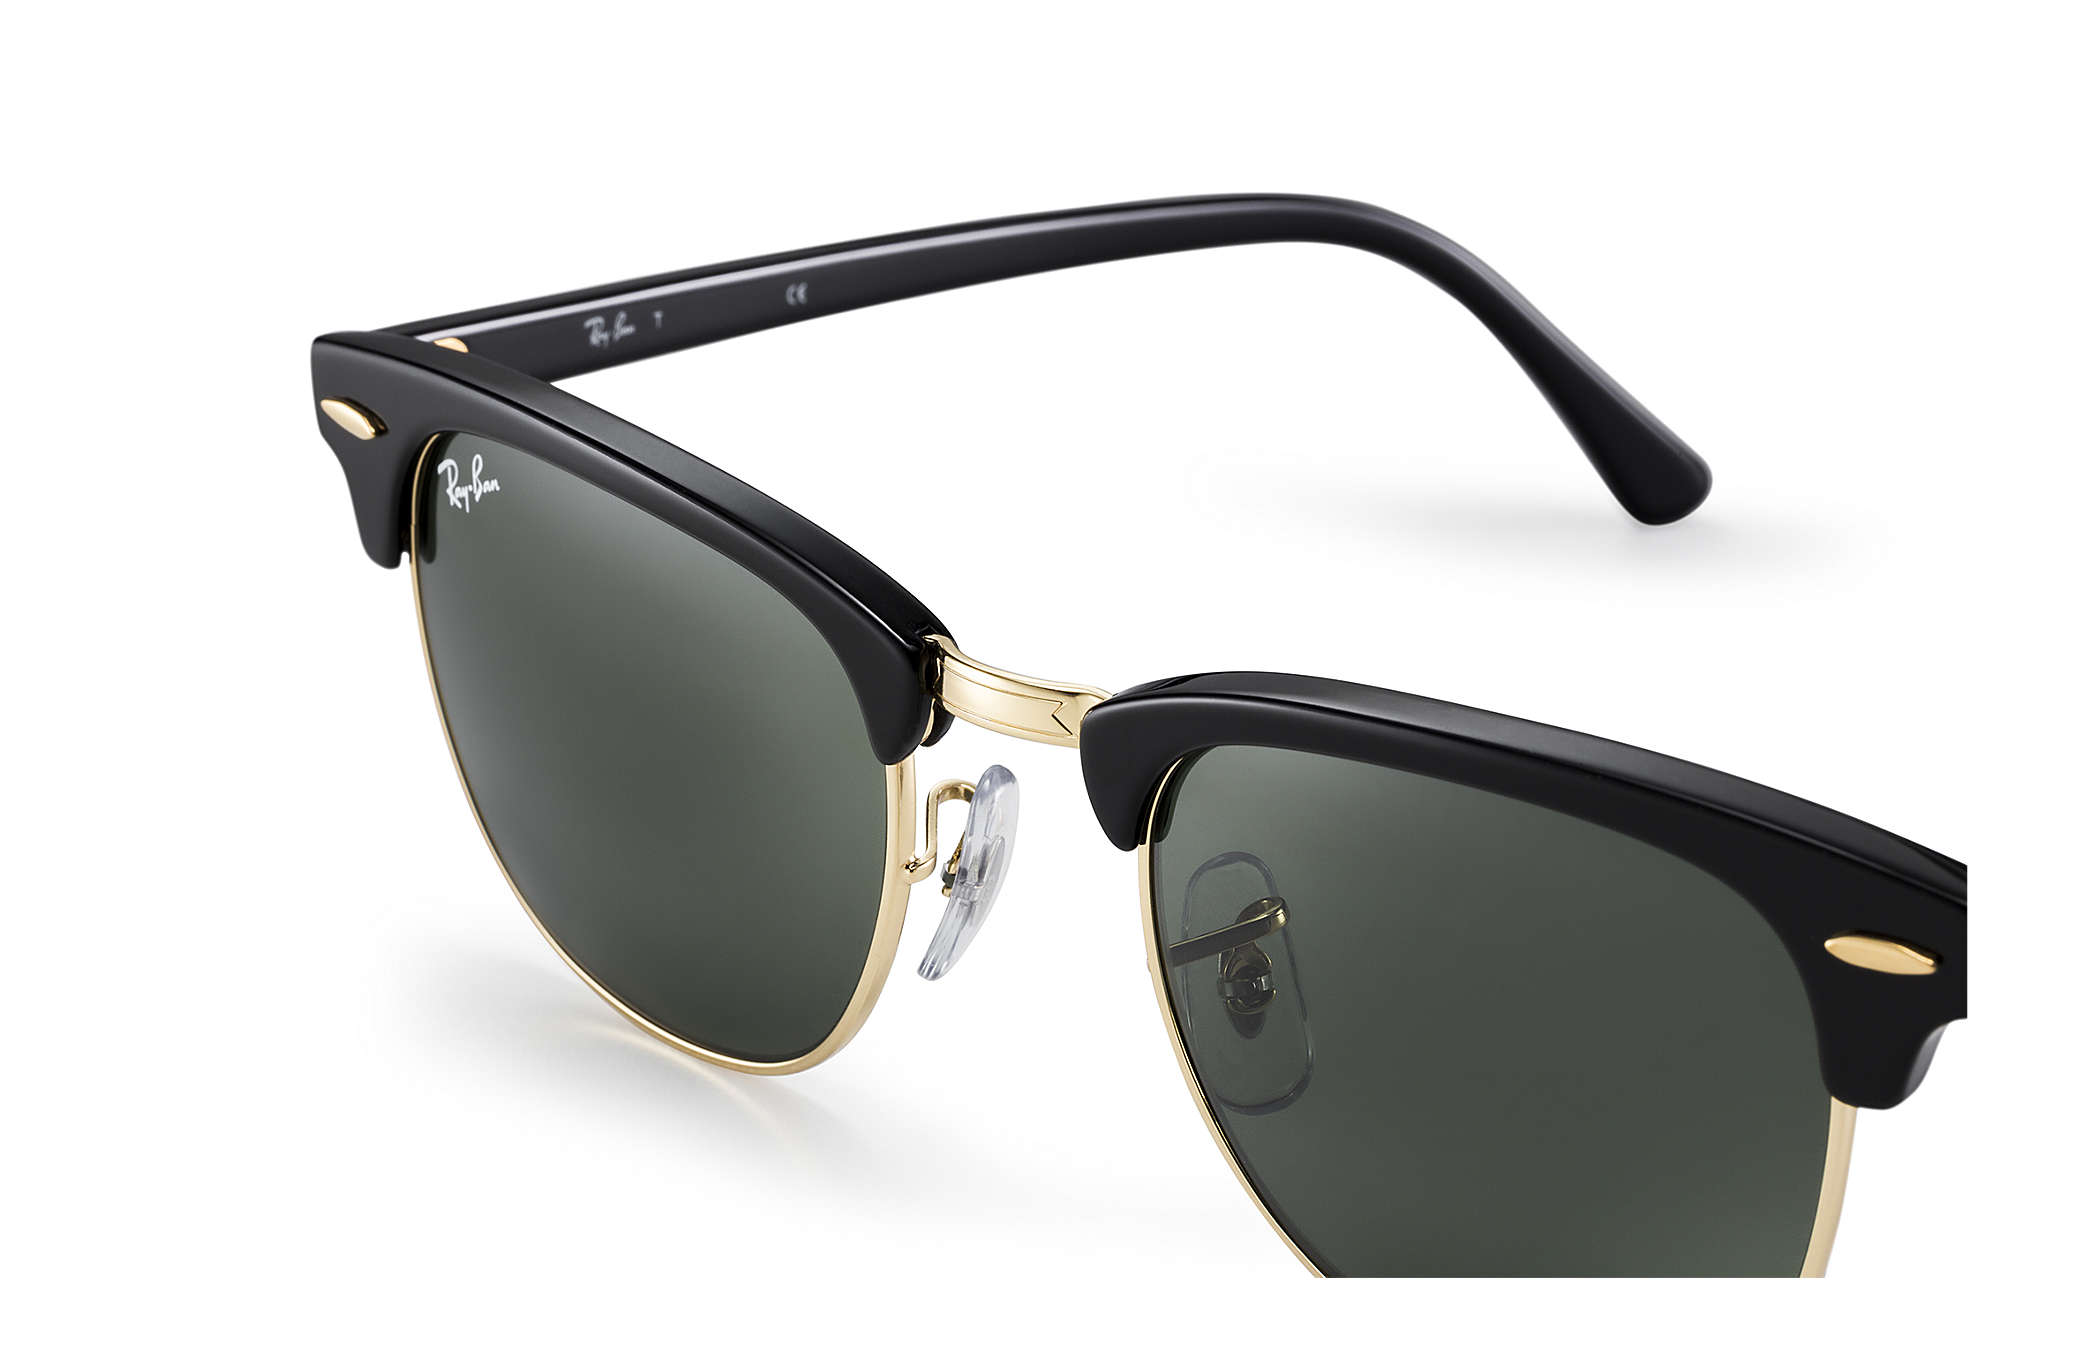 ray ban classic clubmaster black  CLUBMASTER CLASSIC Sunglasses Black Acetate, Green Classic G-15 ...